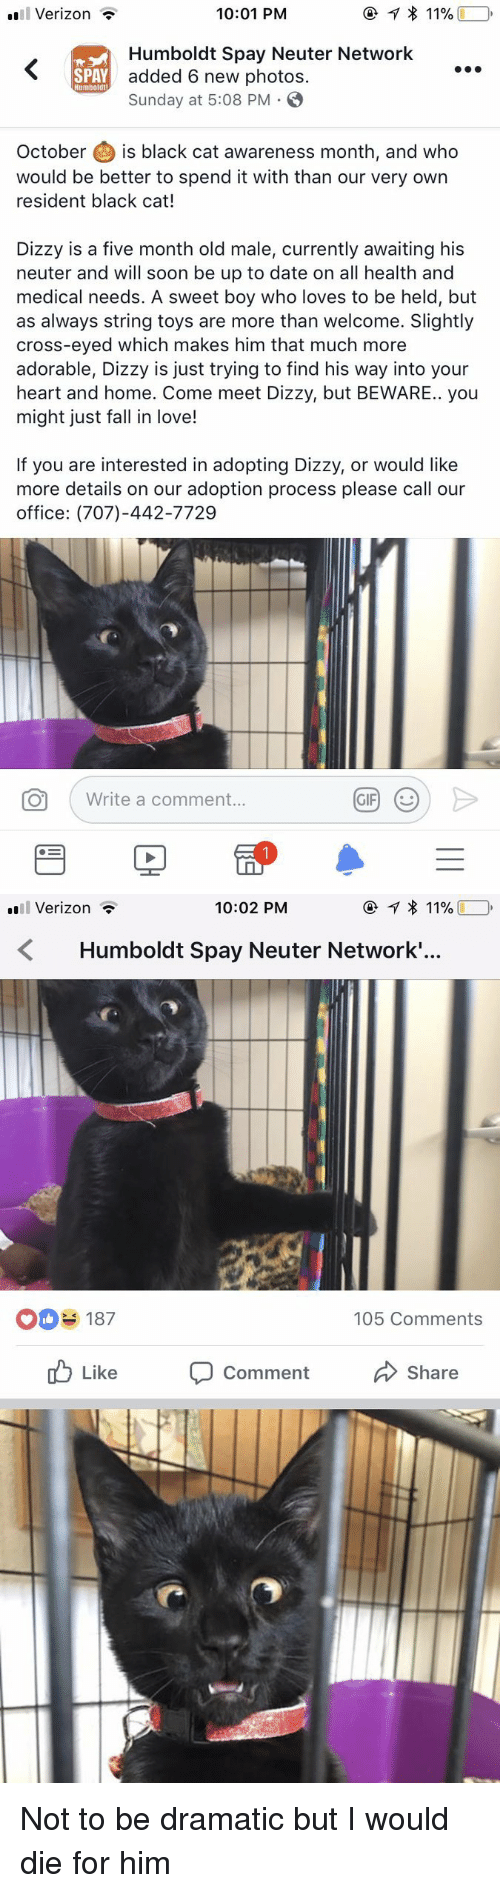 Fall, Love, and Soon...: Verizon -  10:01 PM  Humboldt Spay Neuter Network  added 6 new photos.  Sunday at 5:08 PM .  SPAY  Humboldt  October is black cat awareness month, and who  would be better to spend it with than our very own  resident black cat!  Dizzy is a five month old male, currently awaiting his  neuter and will soon be up to date on all health and  medical needs. A sweet boy who loves to be held, but  as always string toys are more than welcome. Slightly  cross-eyed which makes him that much more  adorable, Dizzy is just trying to find his way into your  heart and home. Come meet Dizzy, but BEWARE.. you  might just fall in love!  If you are interested in adopting Dizzy, or would like  more details on our adoption process please call our  office: (707)-442-7729  O  Write a comment   Verizon *  10:02 PM  Humboldt Spay Neuter Network.'..  O187  105 Comments  ub Like Comment  Share <p>Not to be dramatic but I would die for him<br/></p>